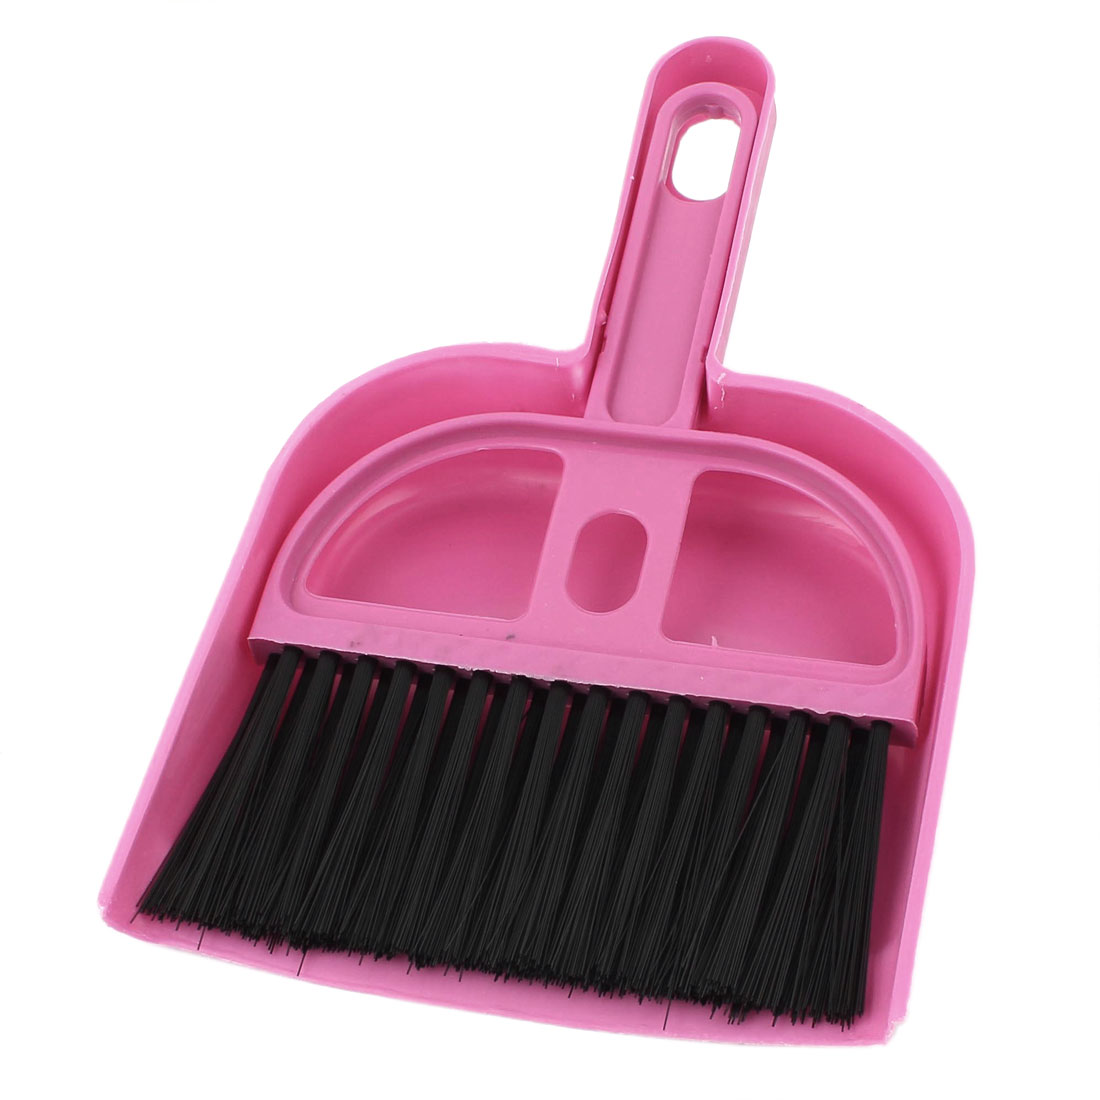 Portable Home PC Desk Computer Keyboard Duster Cleaning Cleaner Brush Pink